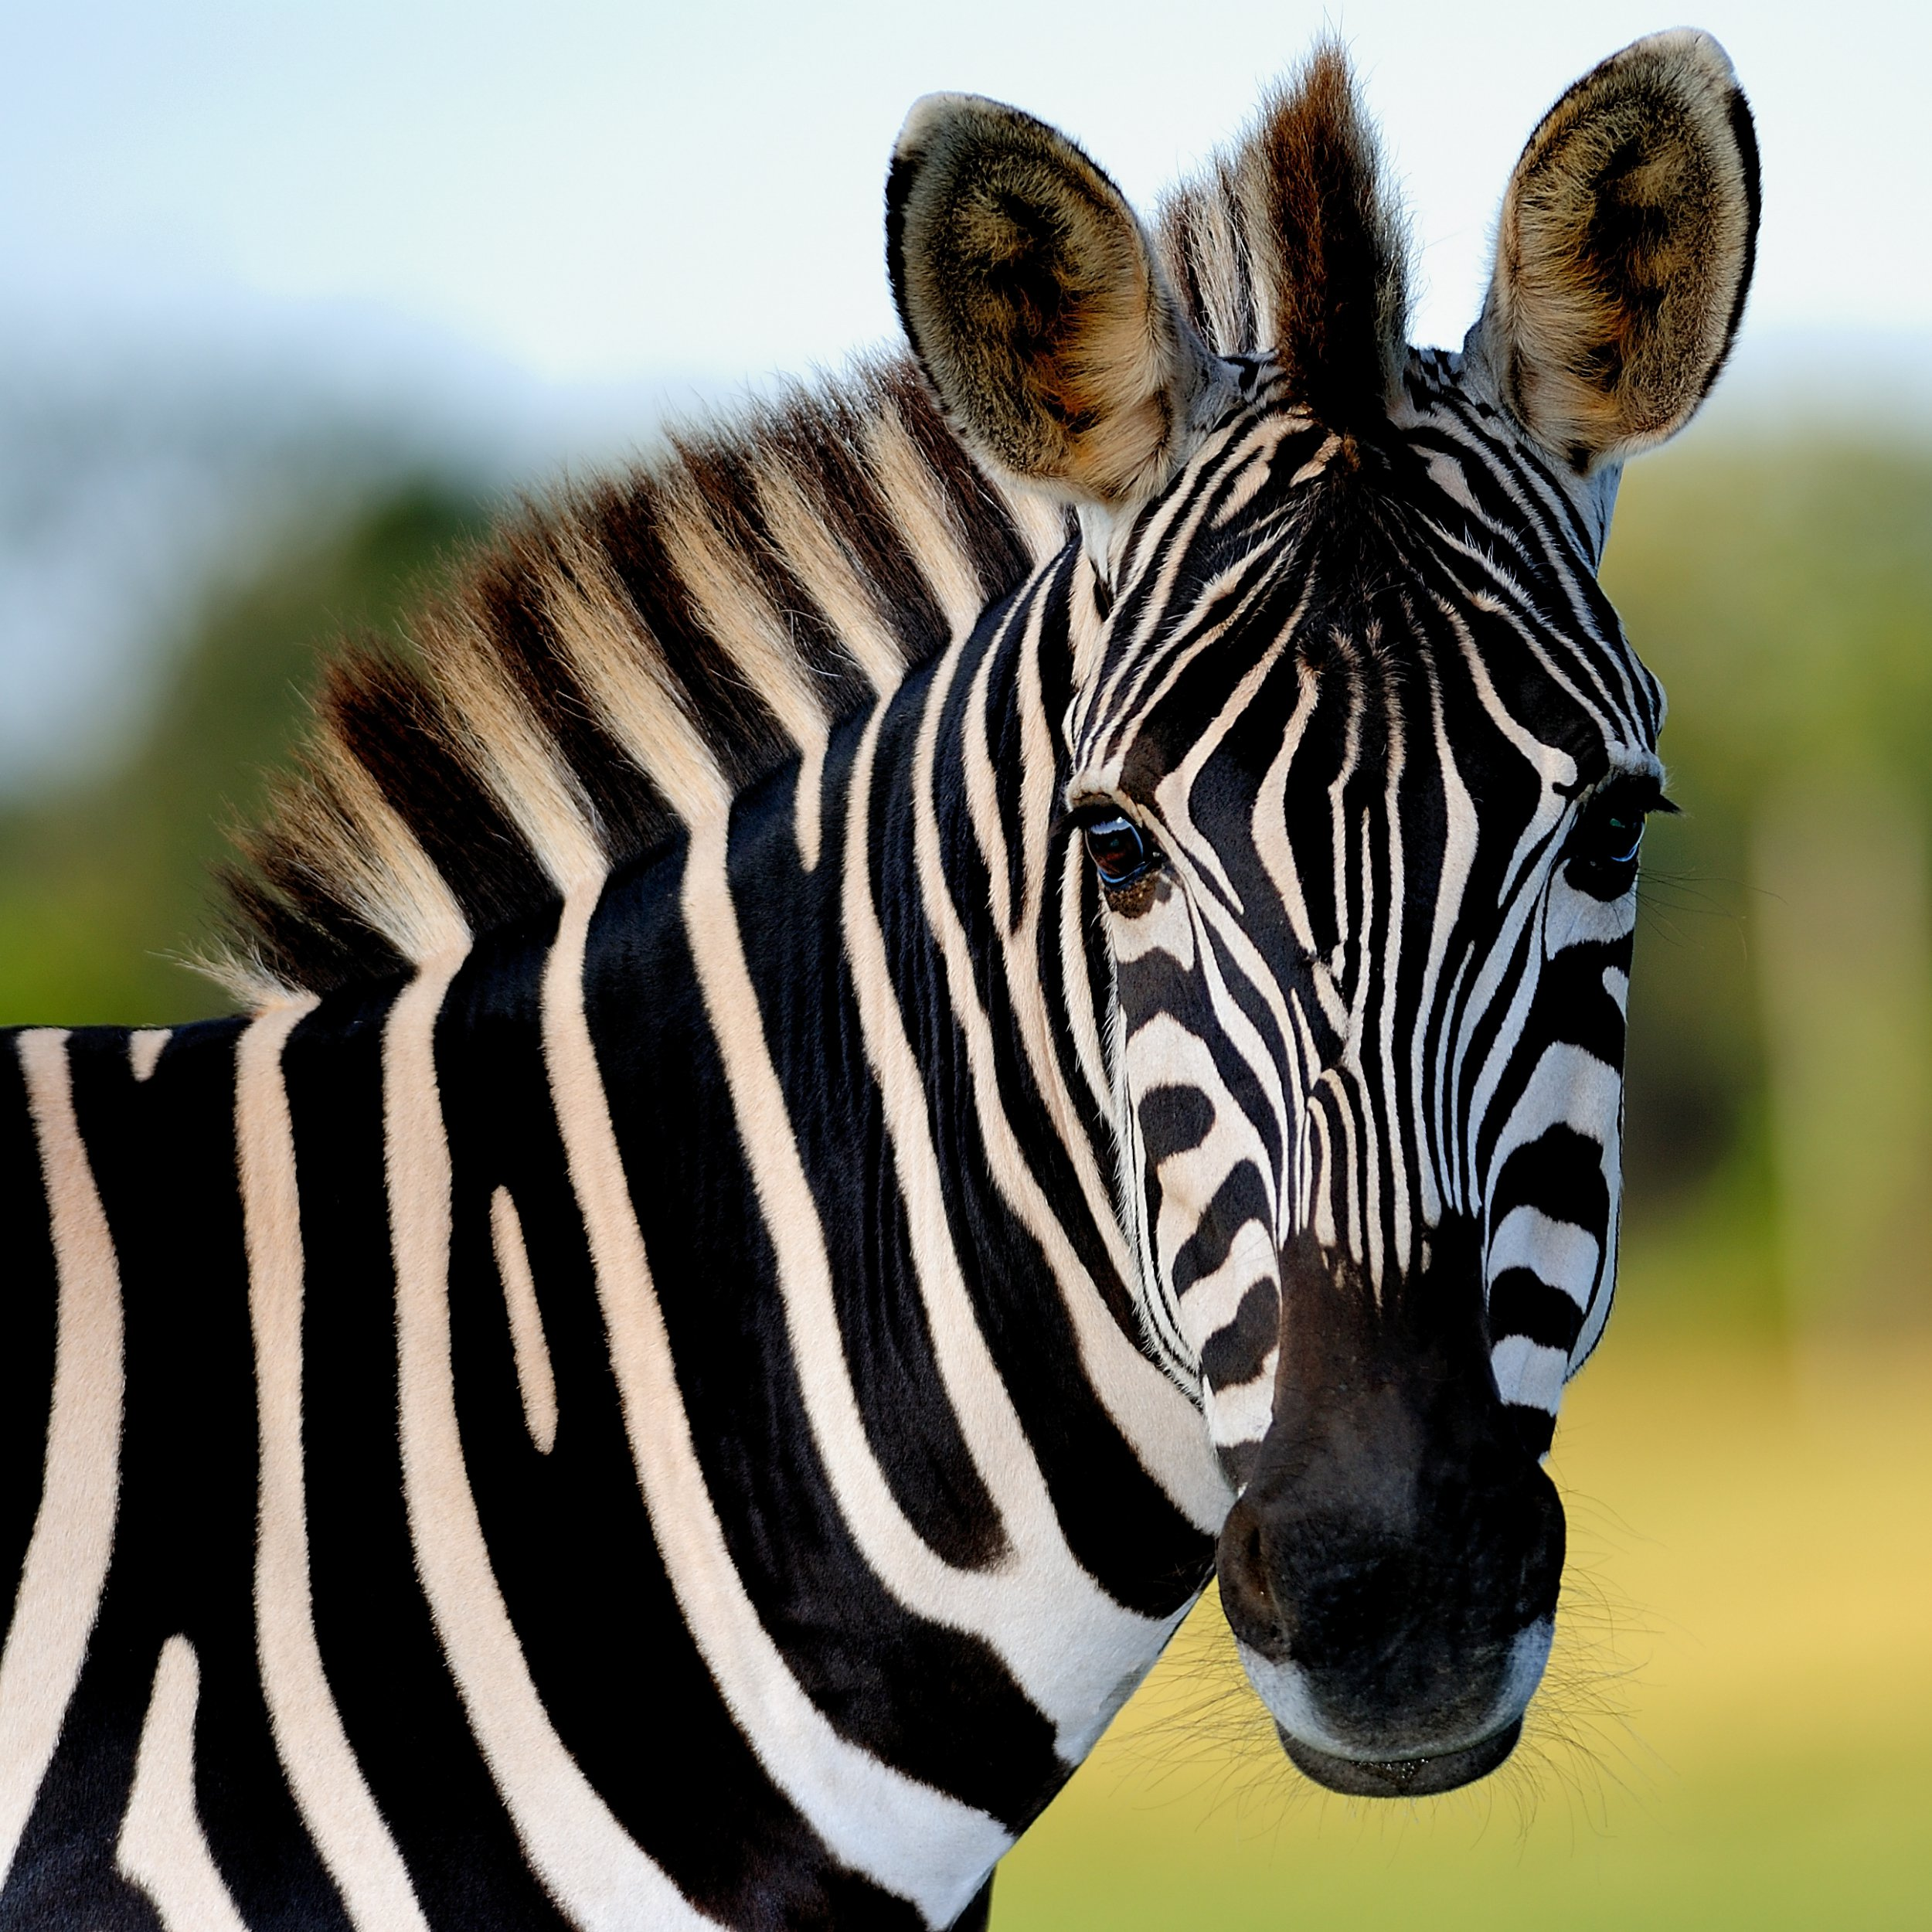 Mystery of zebra stripes solved after bizarre horse costume experiment